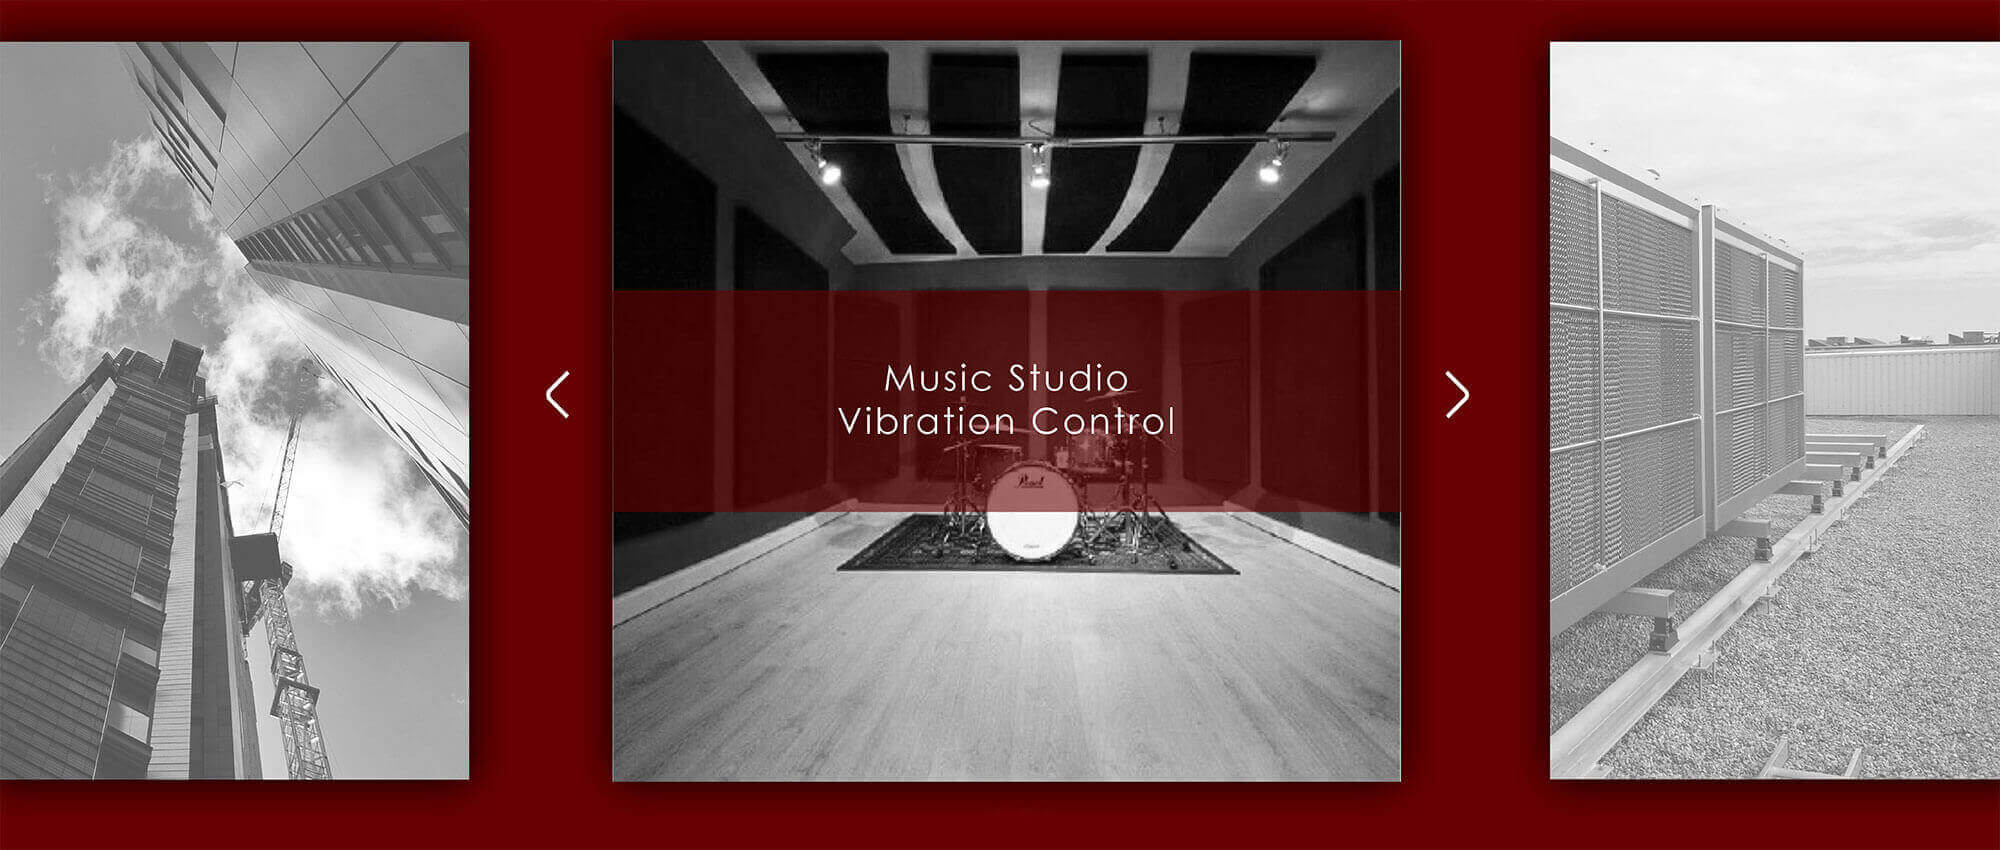 antivibration-vibration-products-for-music-studio-vibration-control-systems